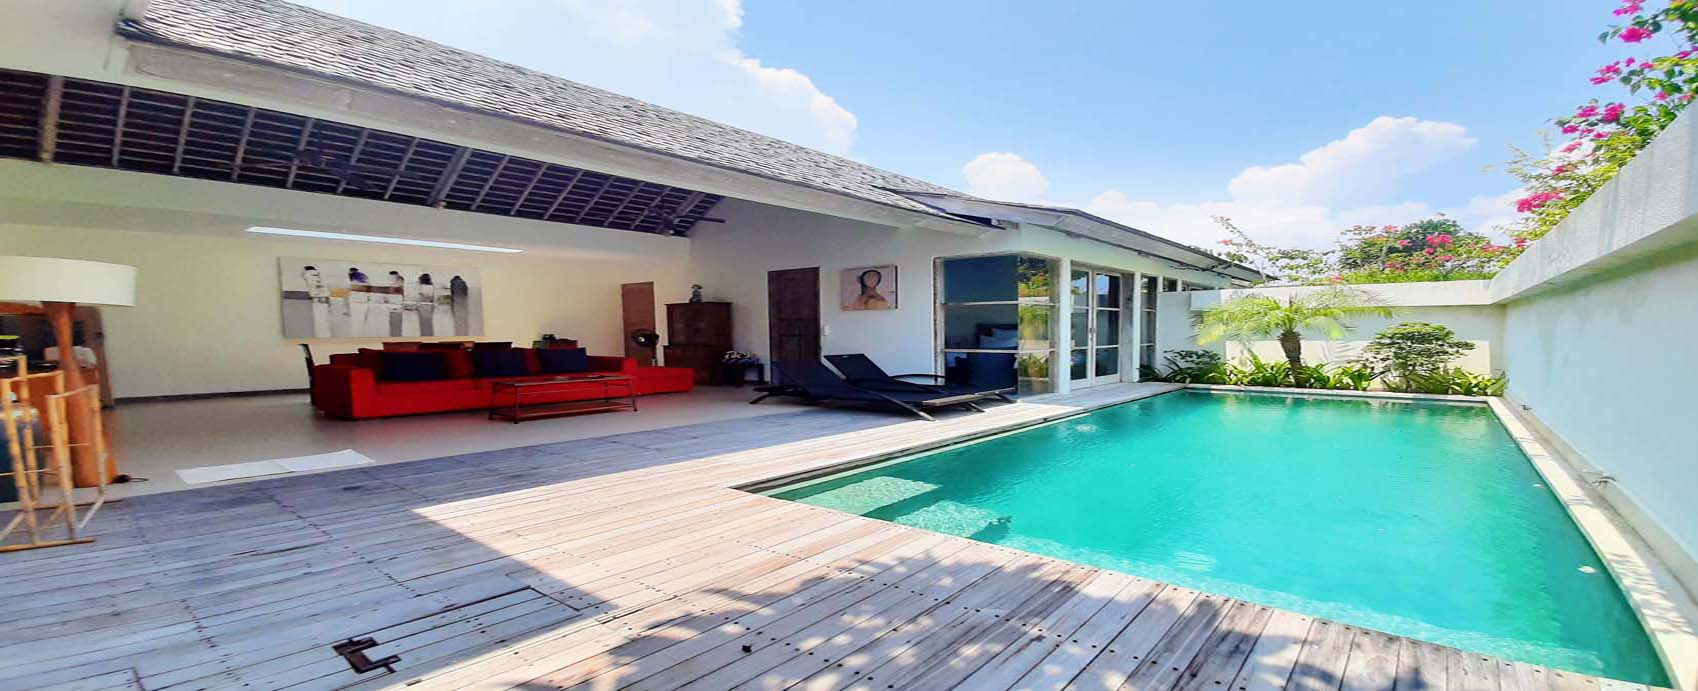 The Decks Bali Legian Indonesia Two Bedroom Villas For Rent In Legian Bali